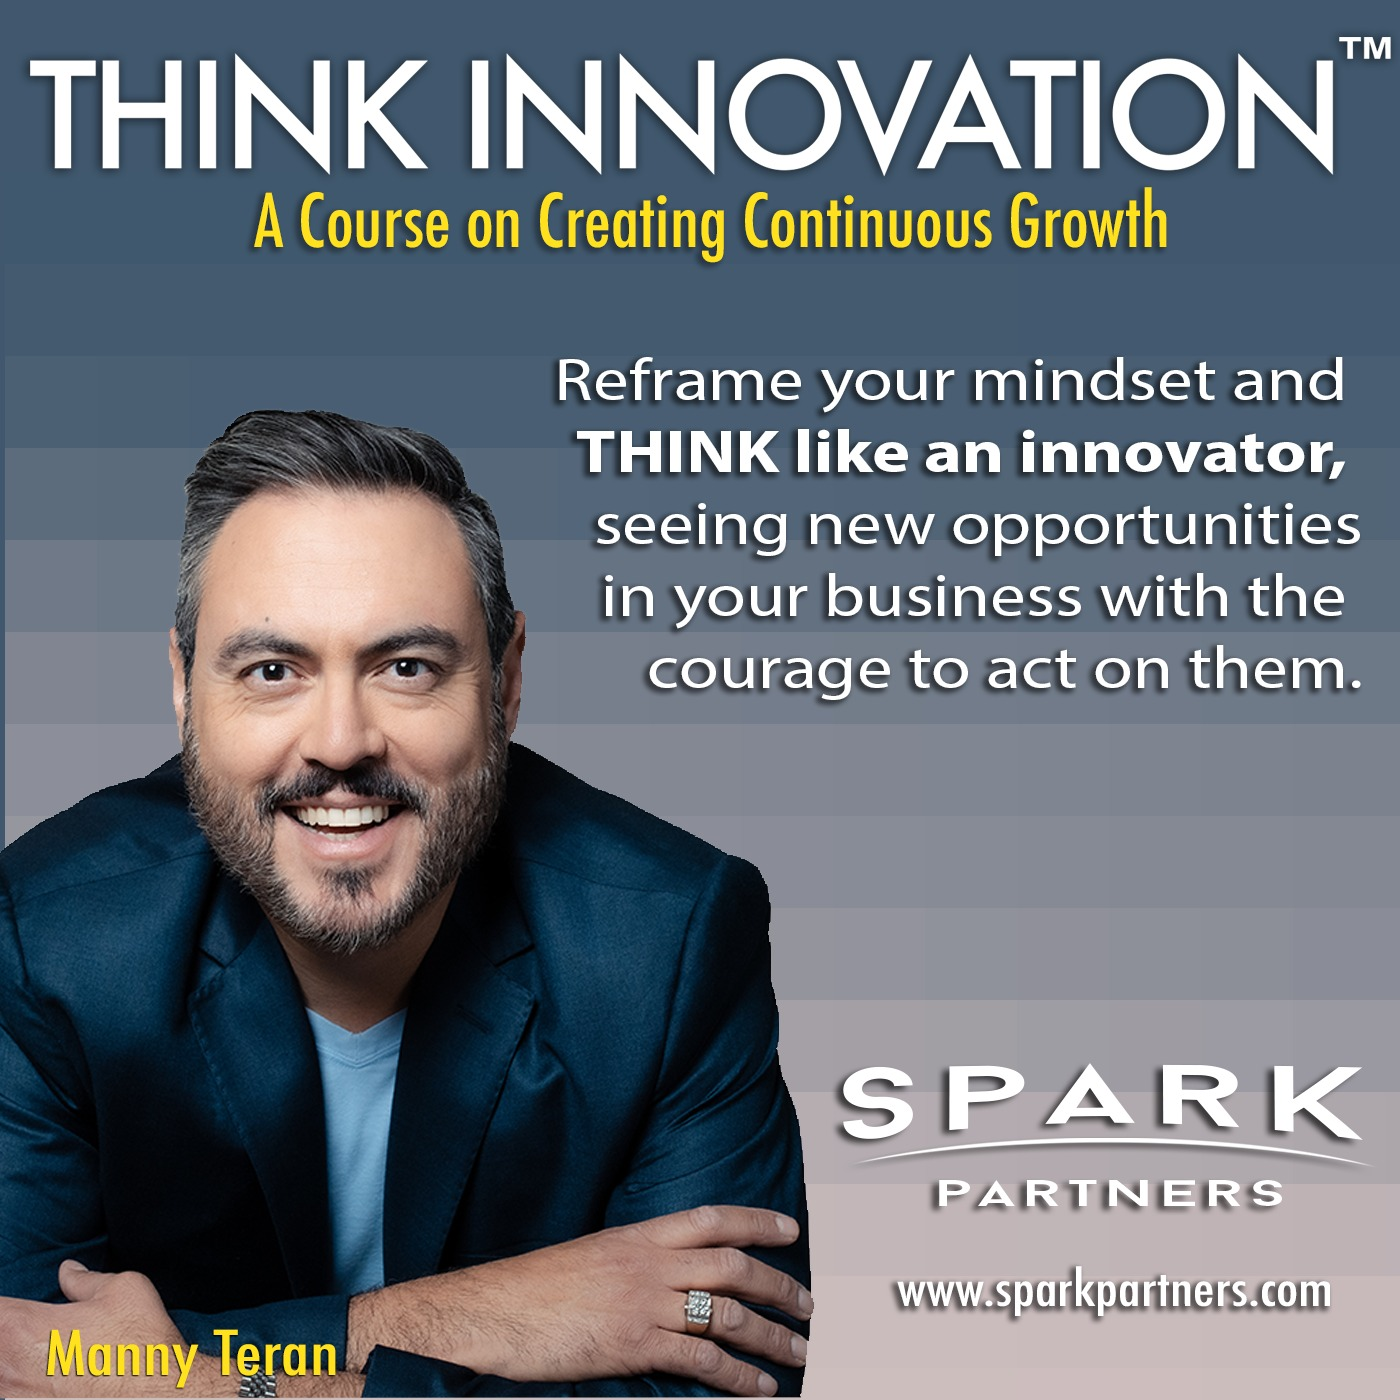 Think Innovation Course by Spark Partners - Introduction by Manny Teran